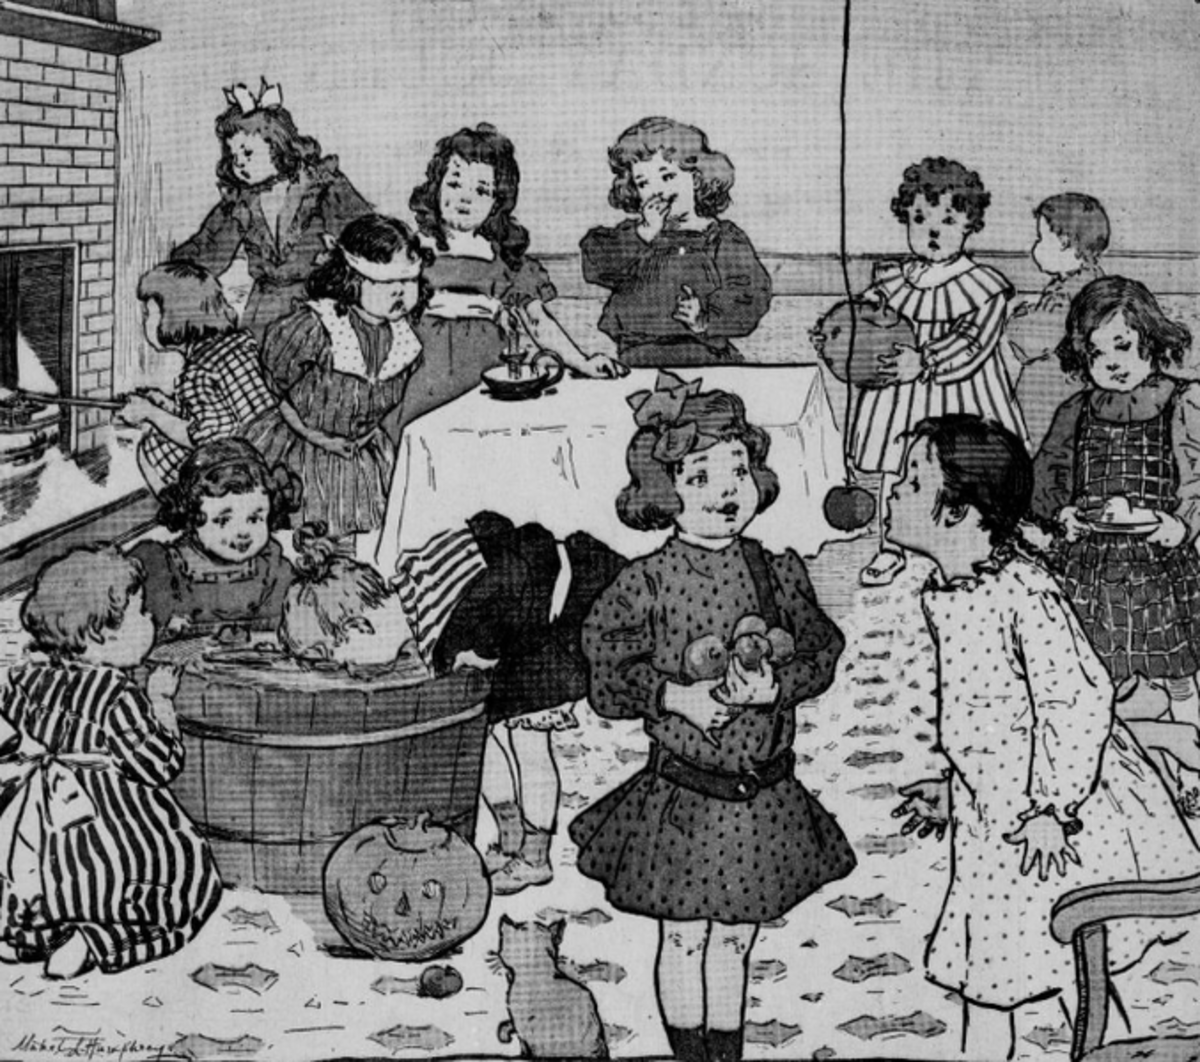 An illustration of a Halloween party for children in the United States, 1903. The children can be seen bobbing for apples, a traditional Halloween pastime.